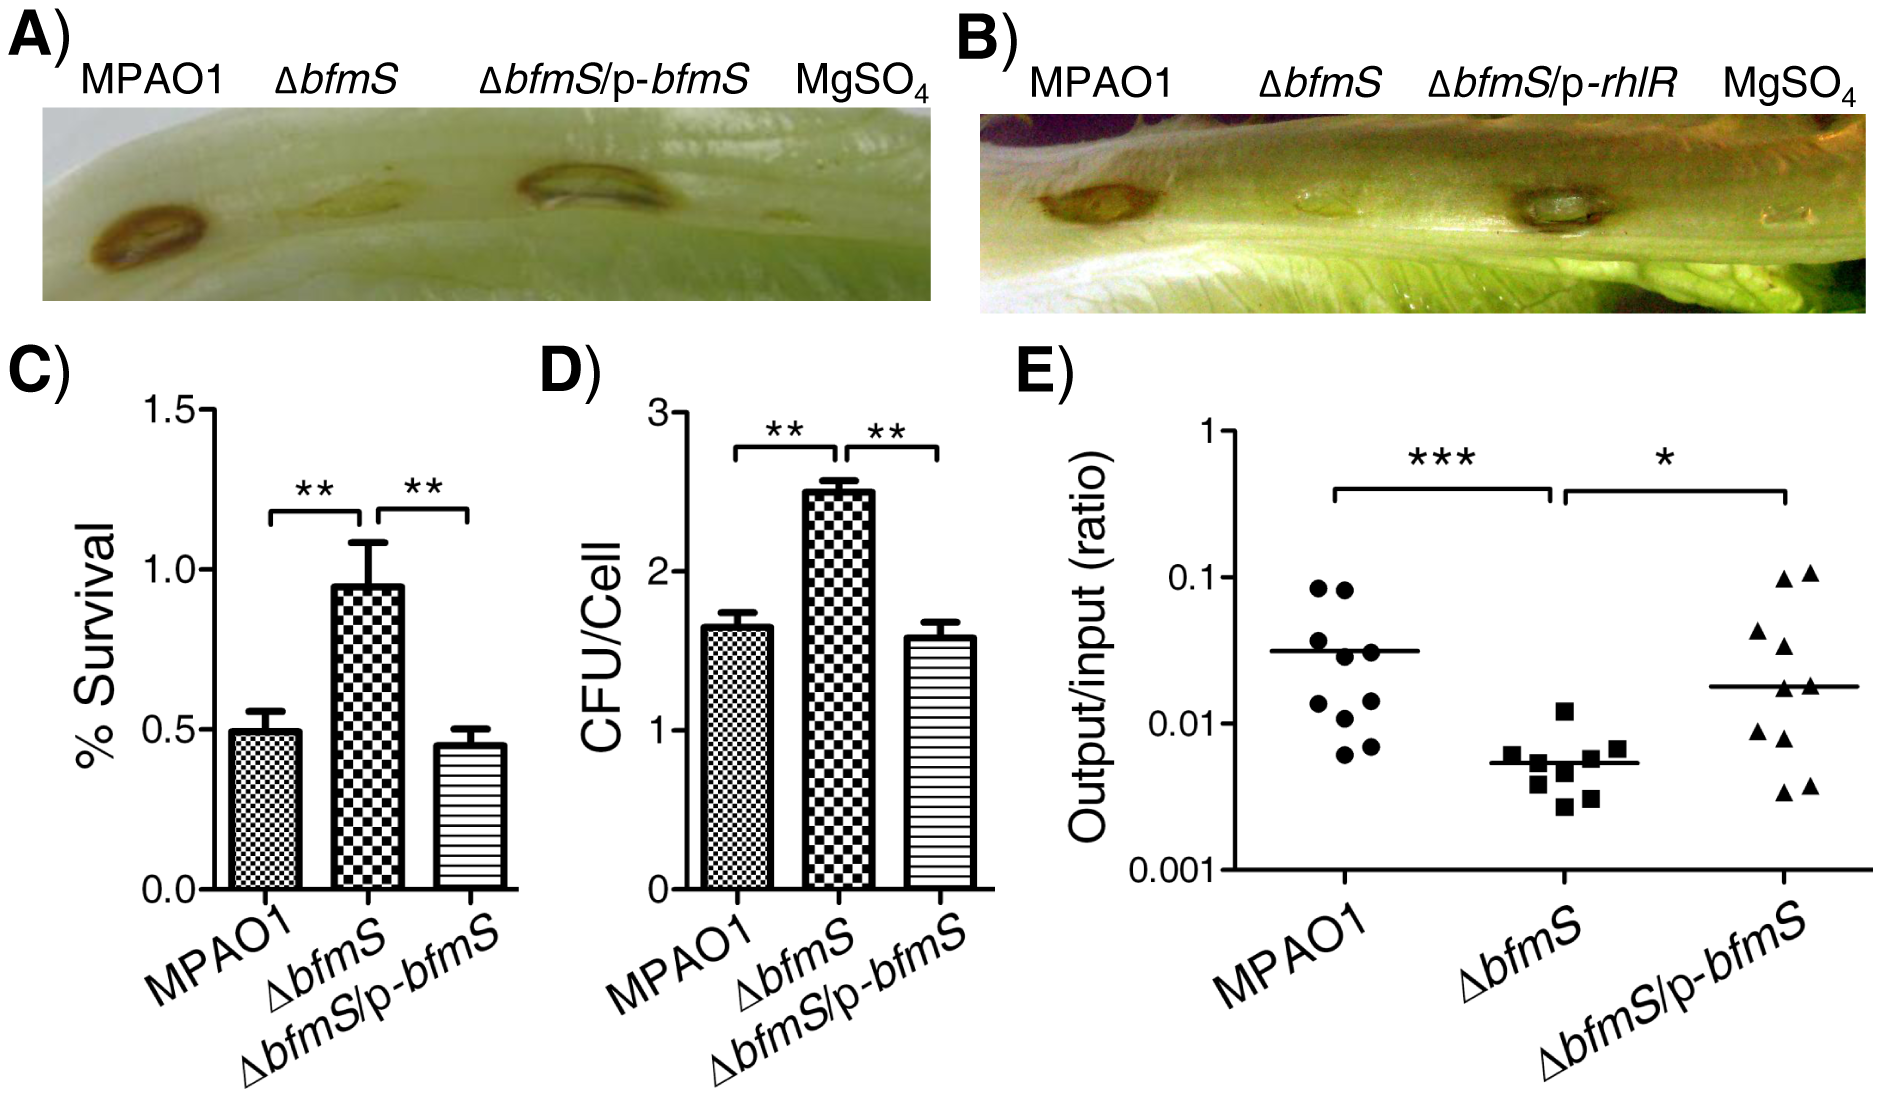 Effect of <i>bfmS</i> deletion on bacterial virulence and the ability of <i>P. aeruginosa</i> to adapt to the host.